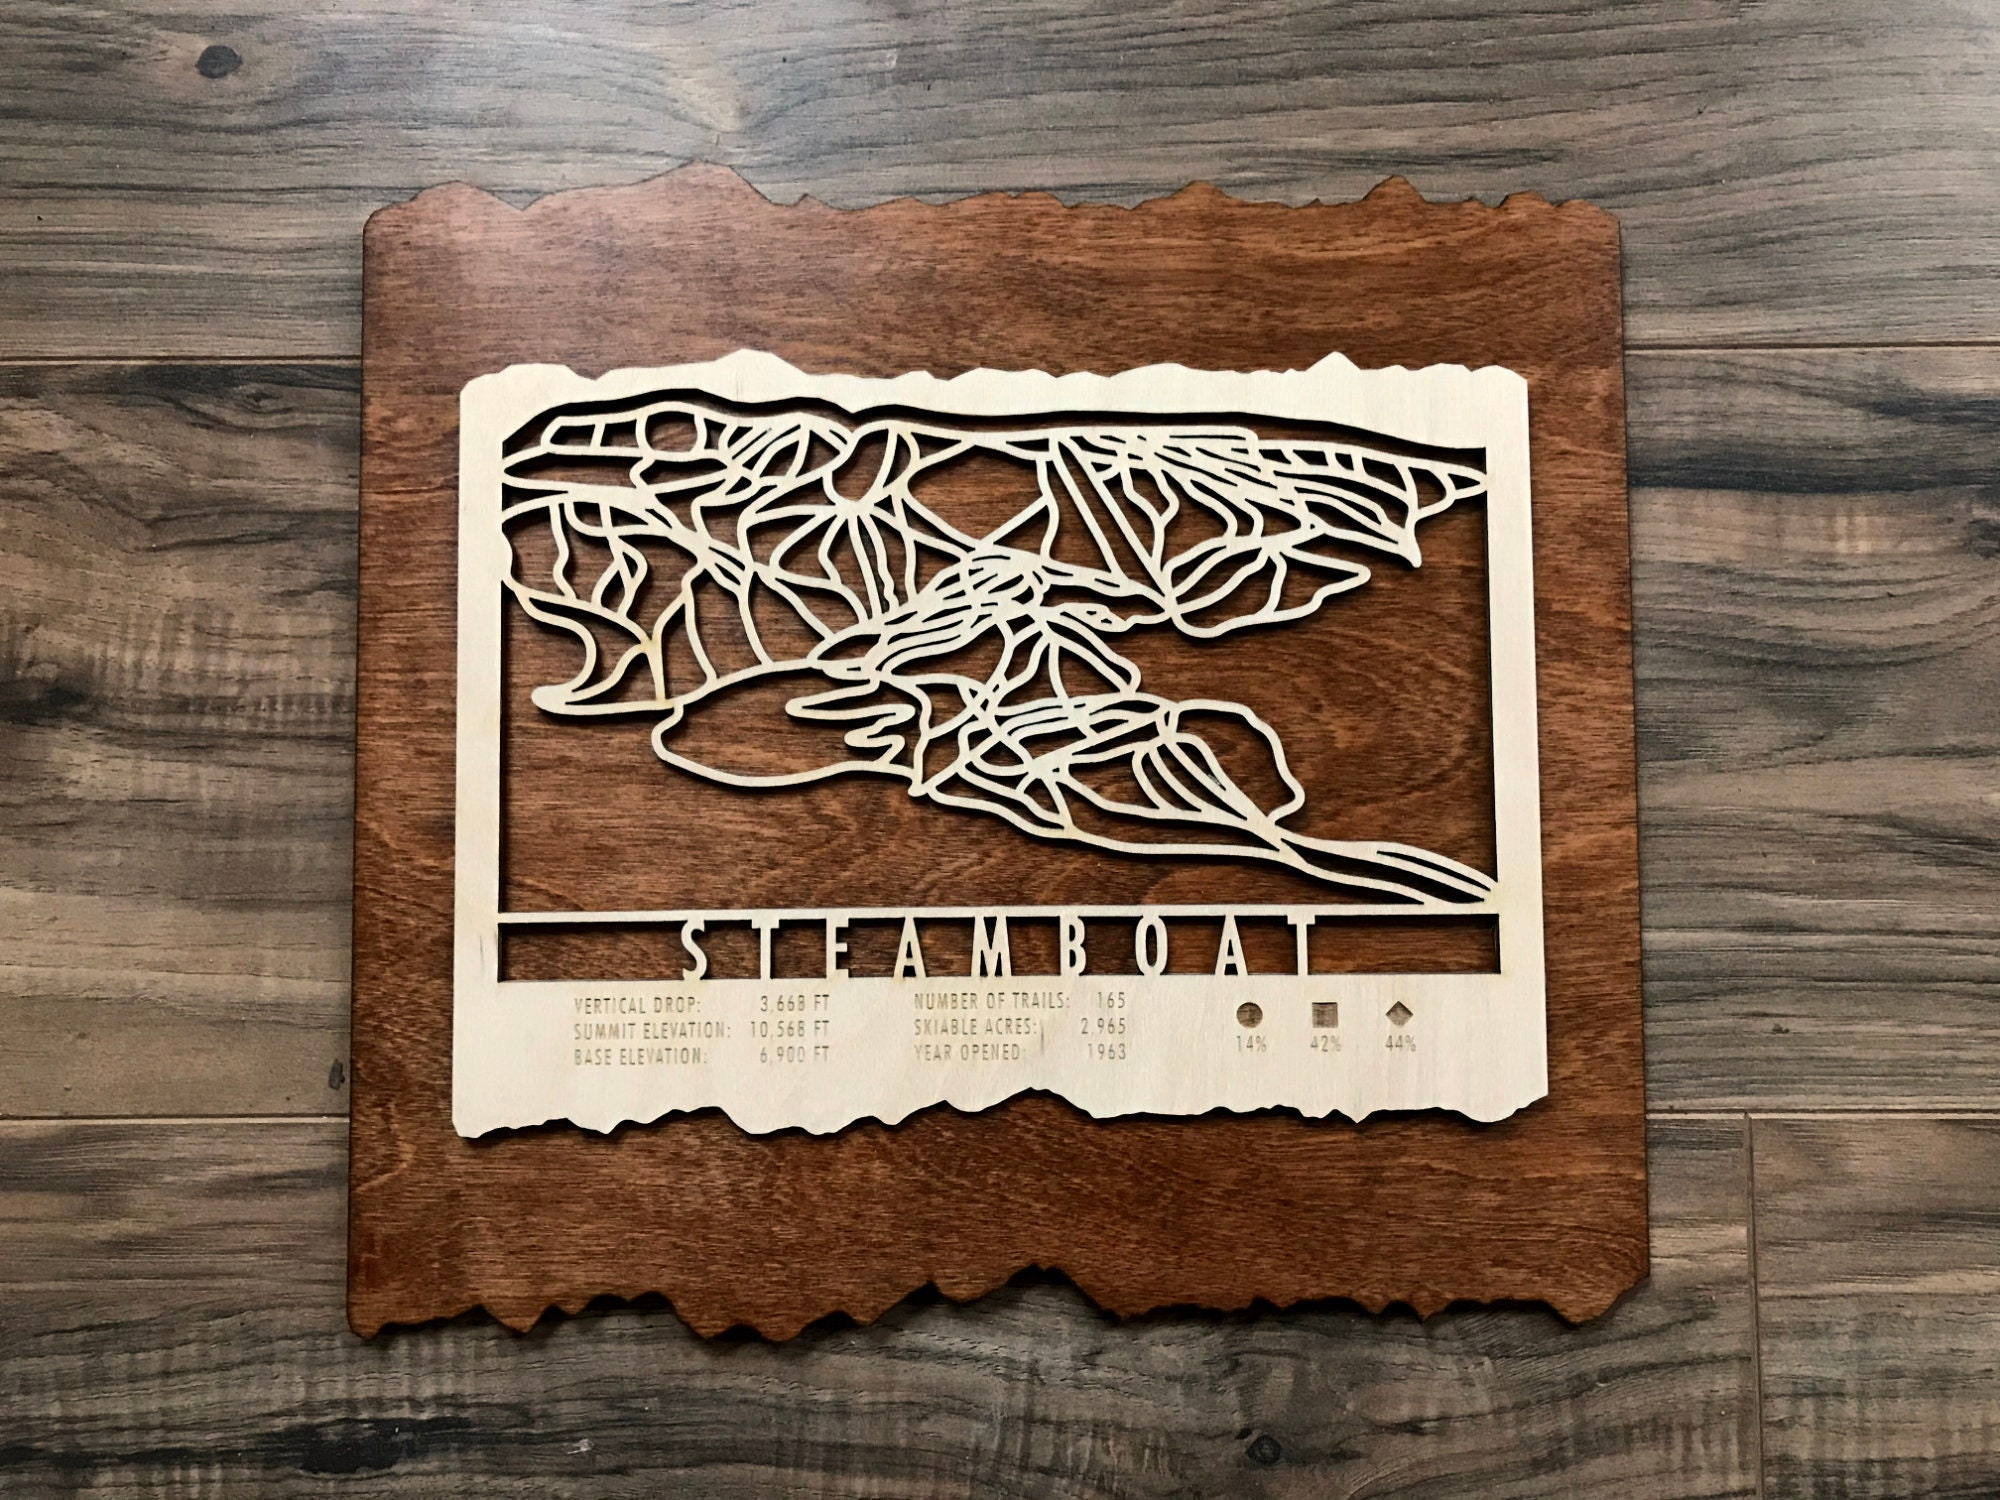 Steamboat Ski Map Art - Trail Map Cut from Wood